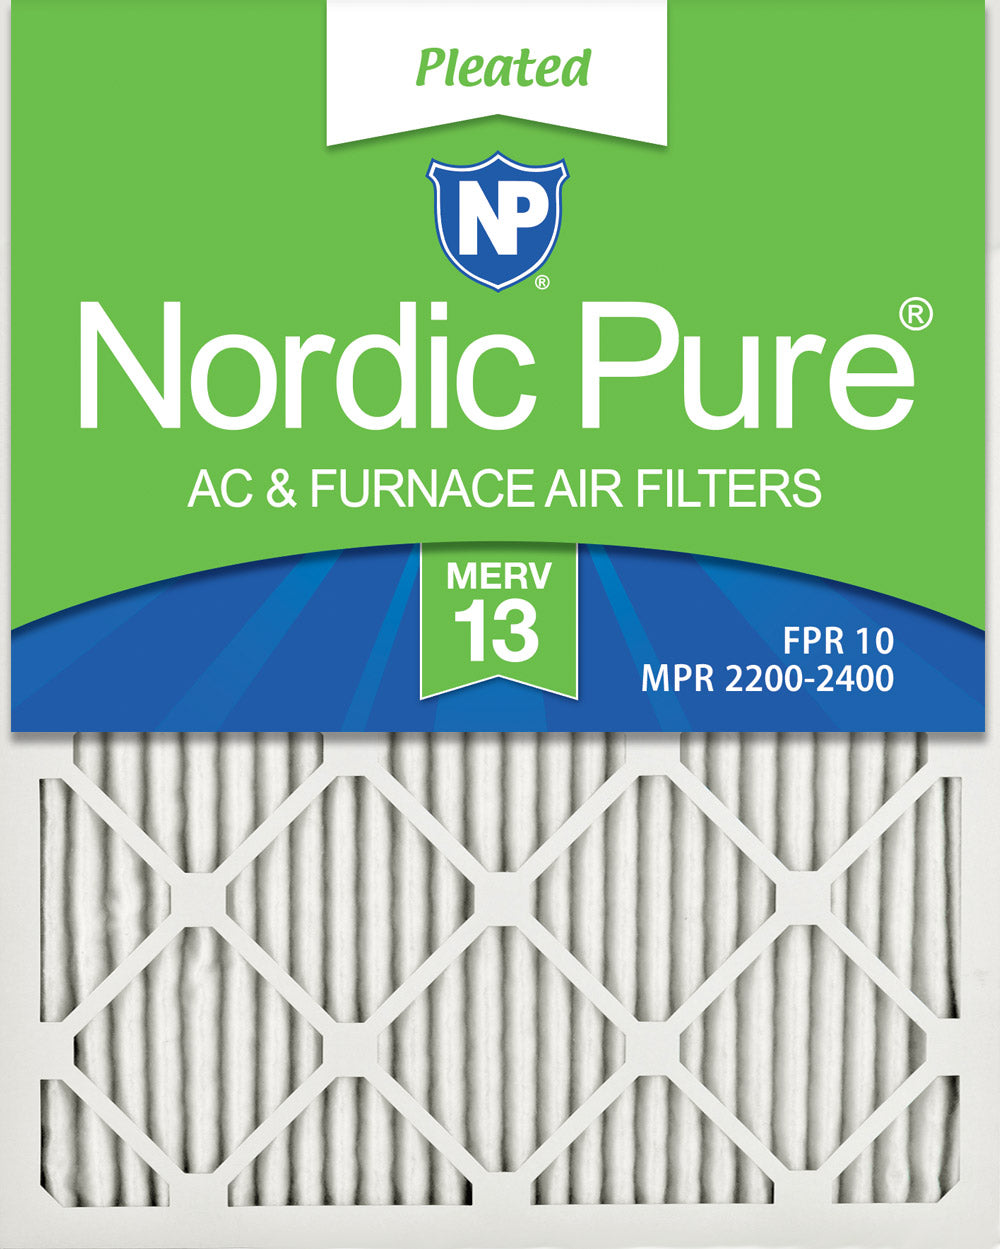 16x20x1 Pleated MERV 13 Air Filters 3 Pack